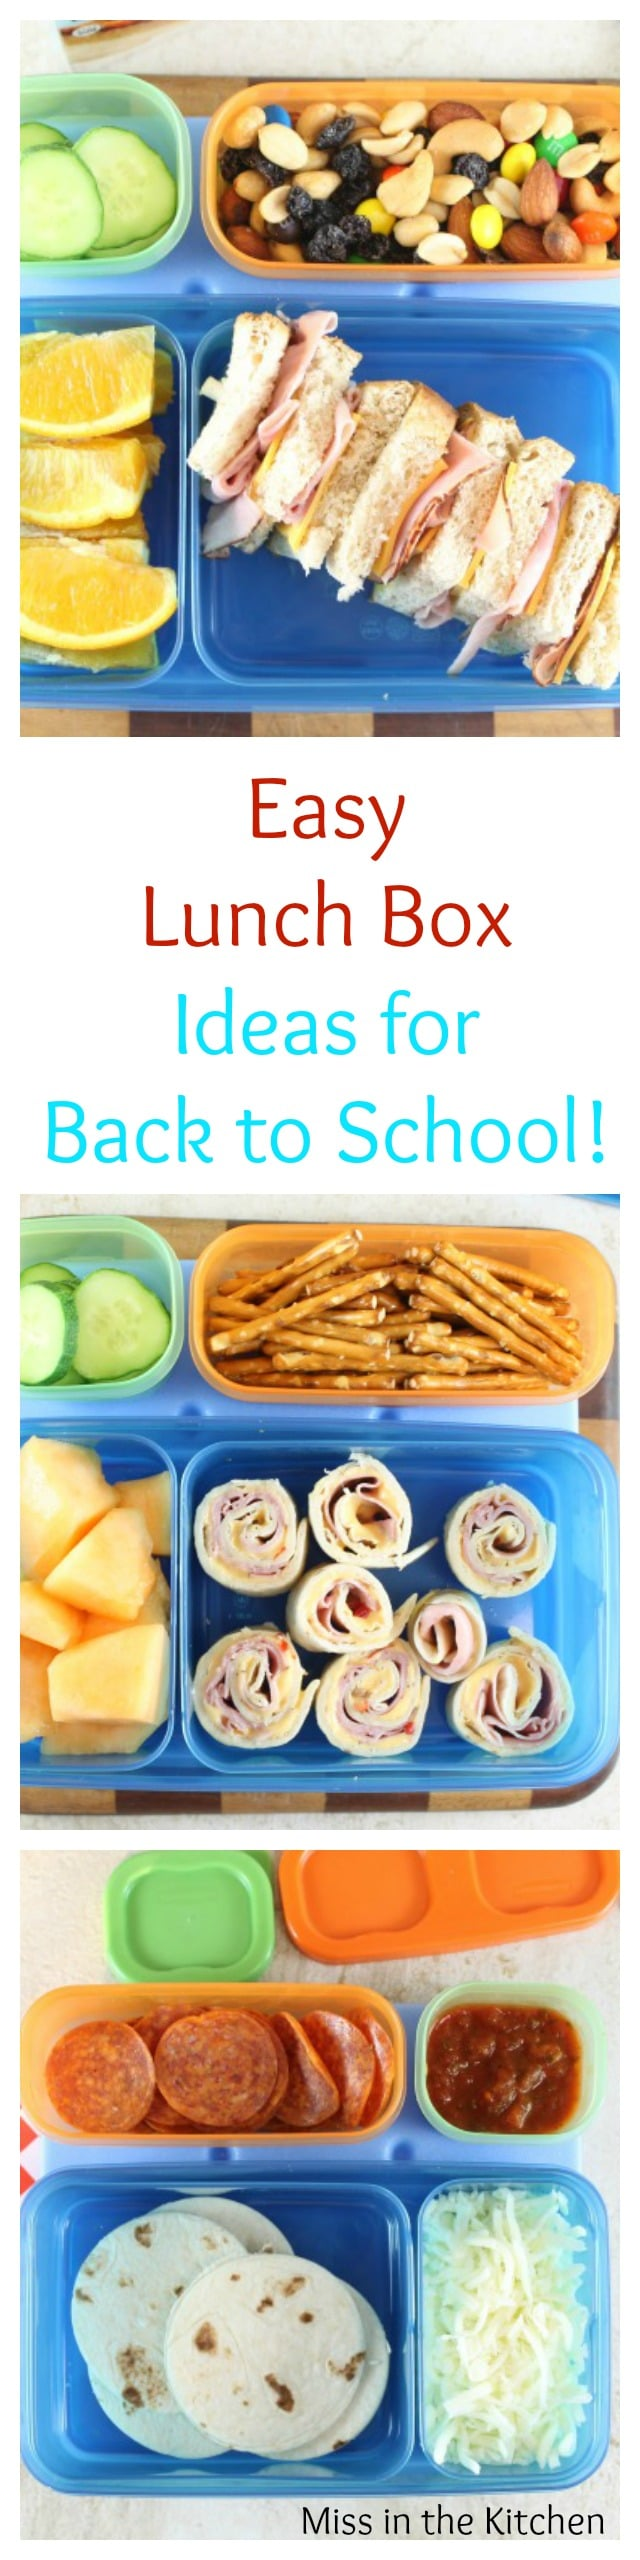 Easy Lunch Box Ideas with Rubbermaid LunchBlox Ideas from MissintheKitchen.com